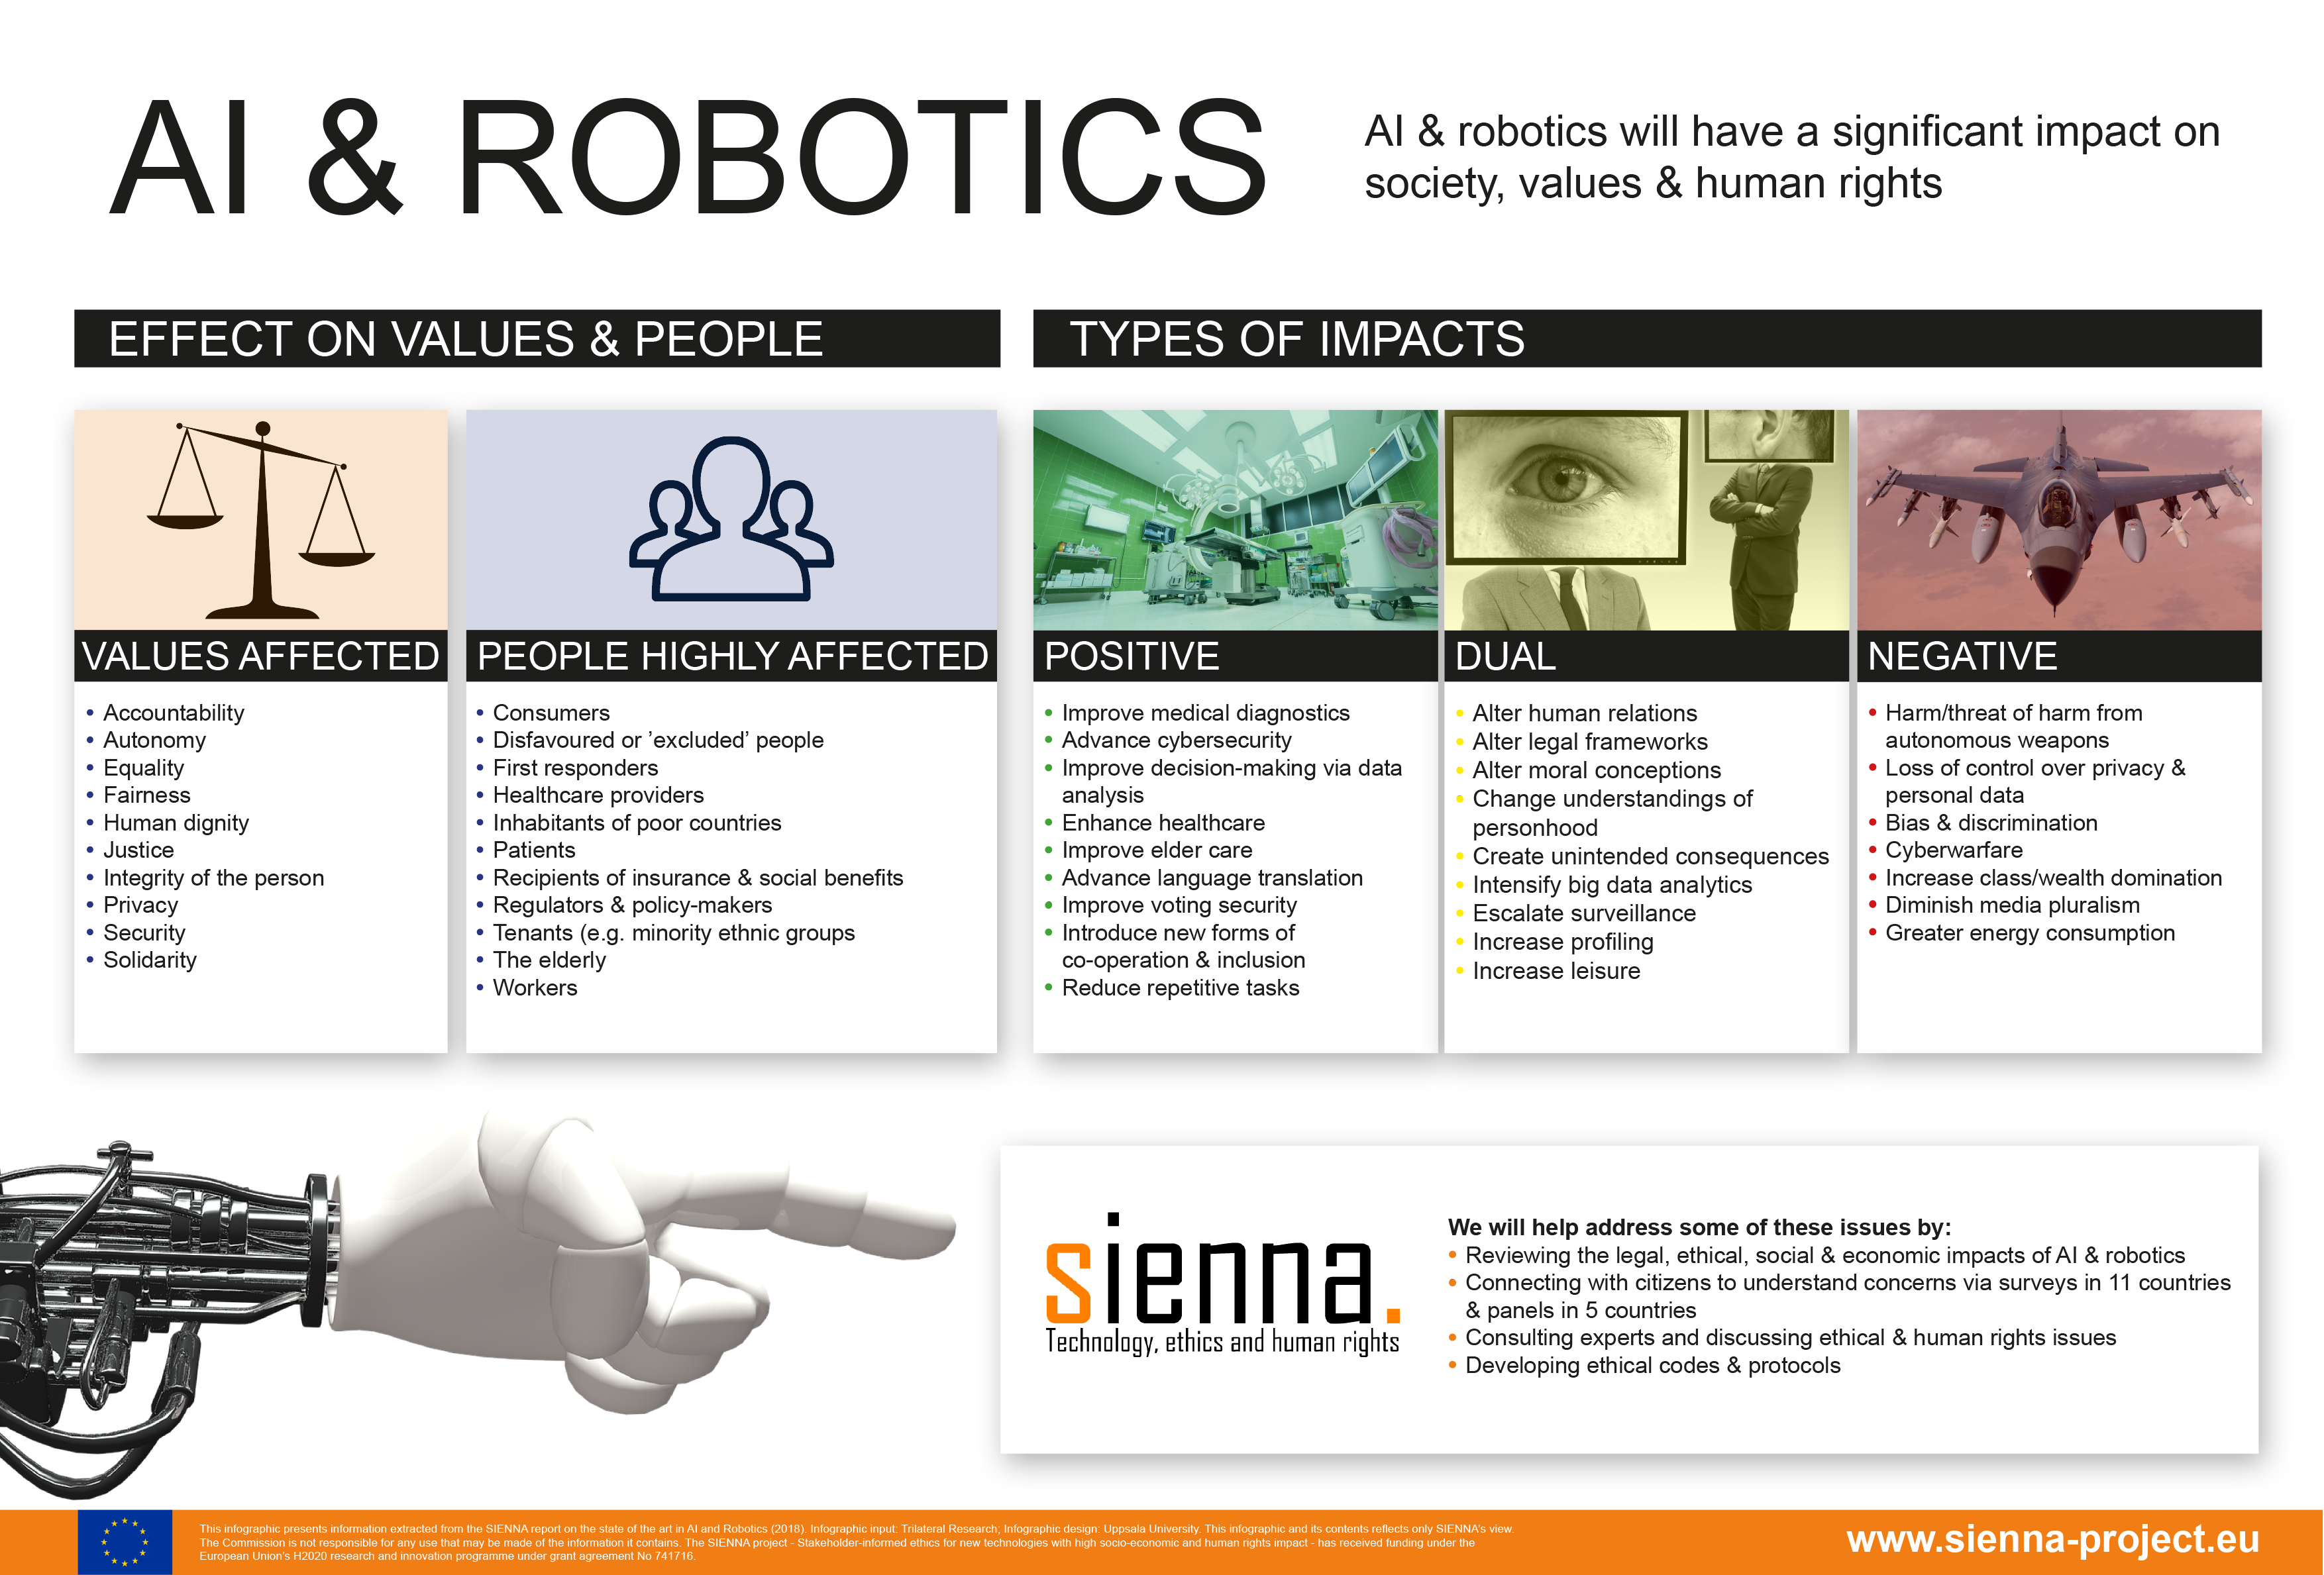 SIENNA Infographic on AI and robotics